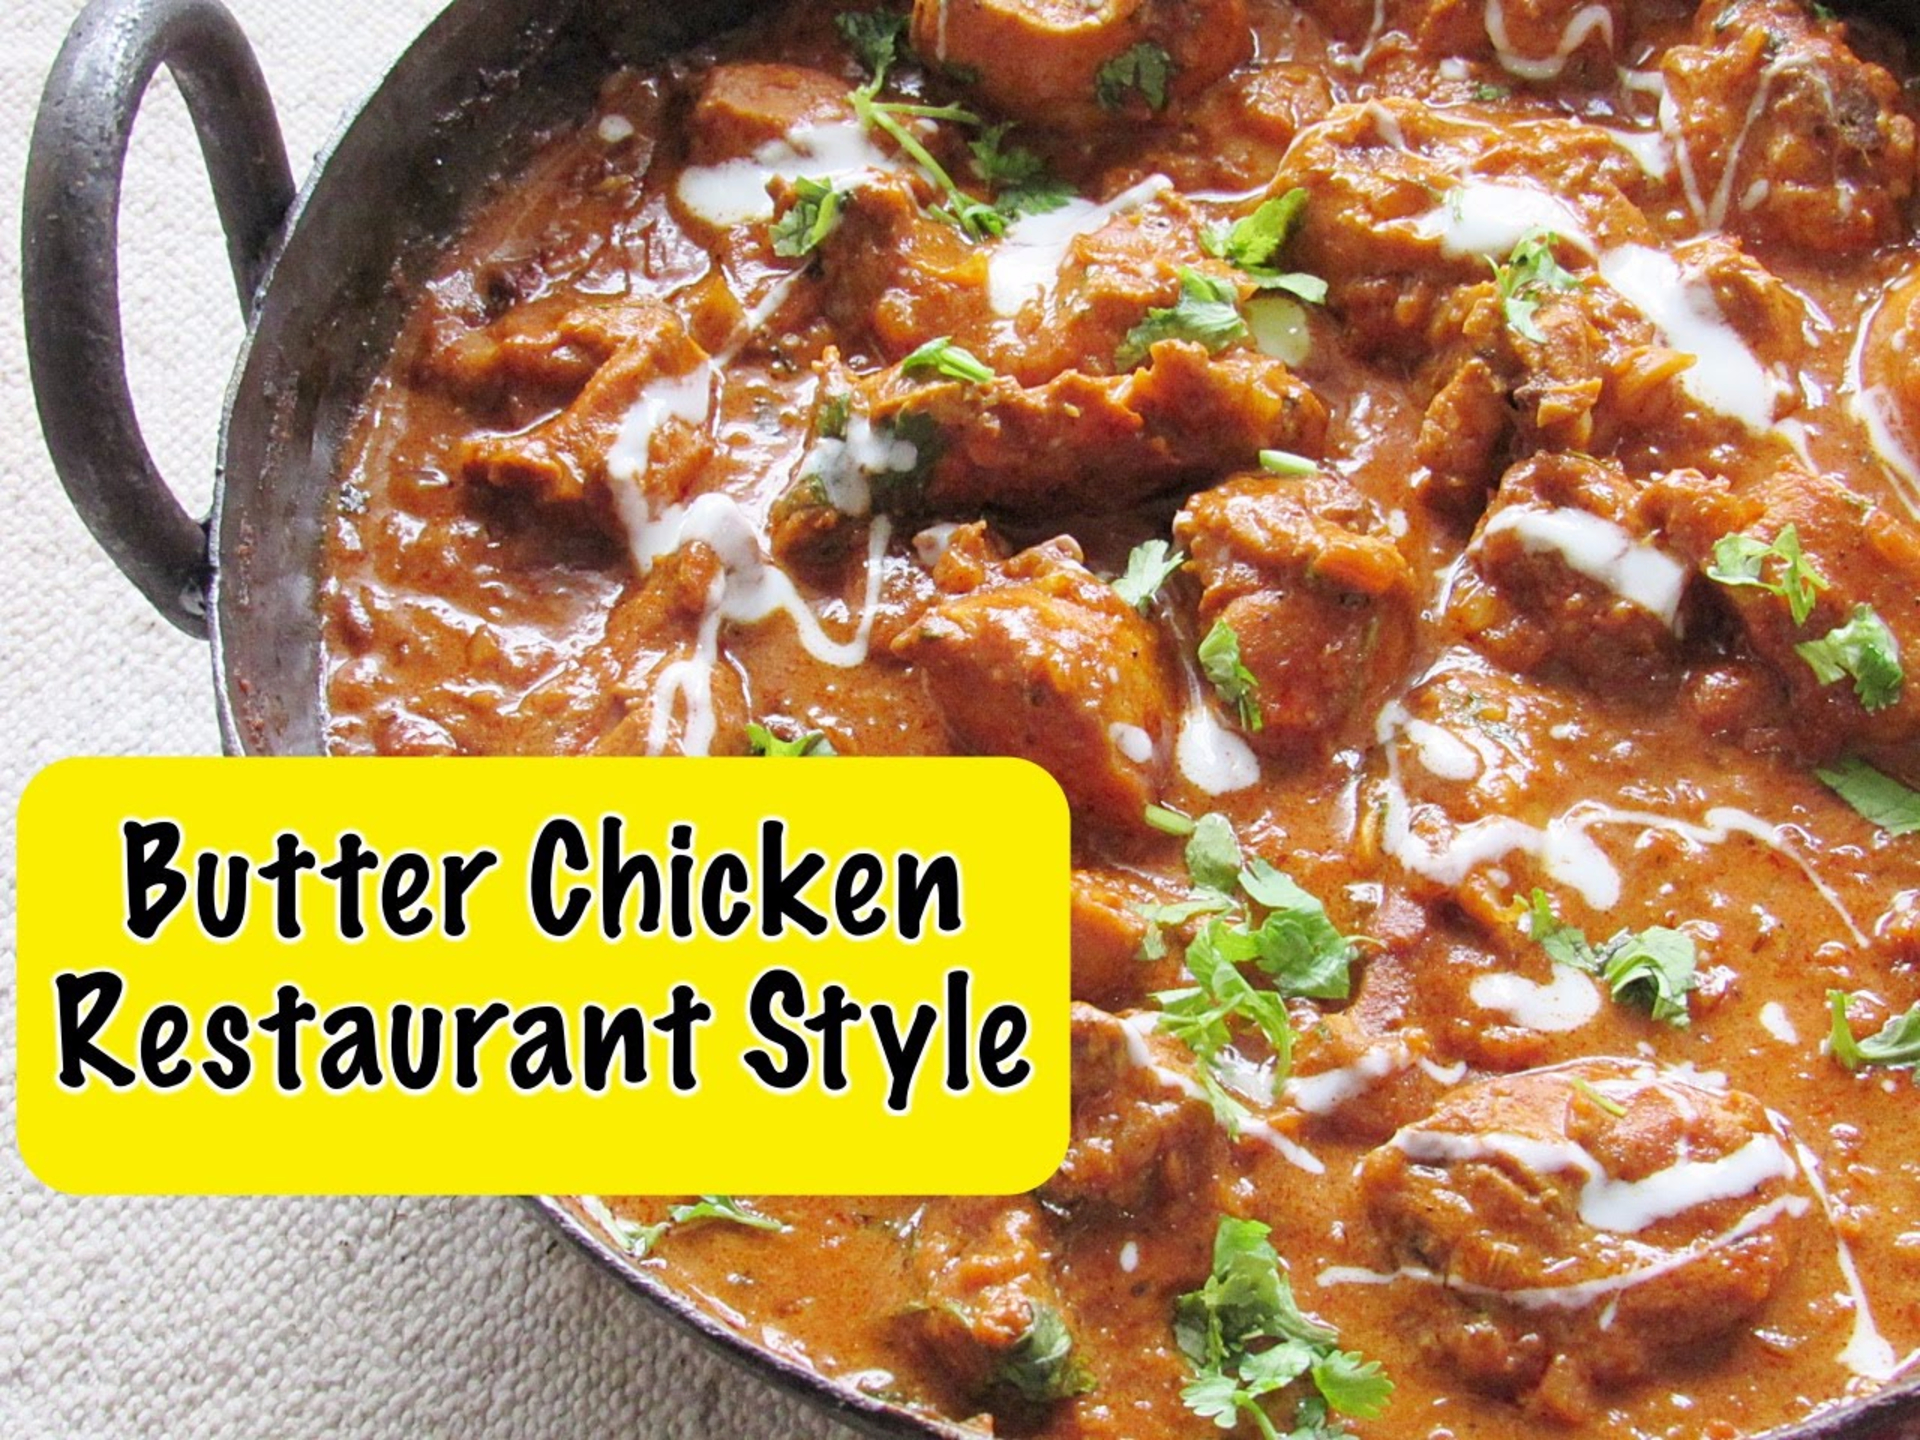 Butter Chicken or Murg Makhani - Recipe image